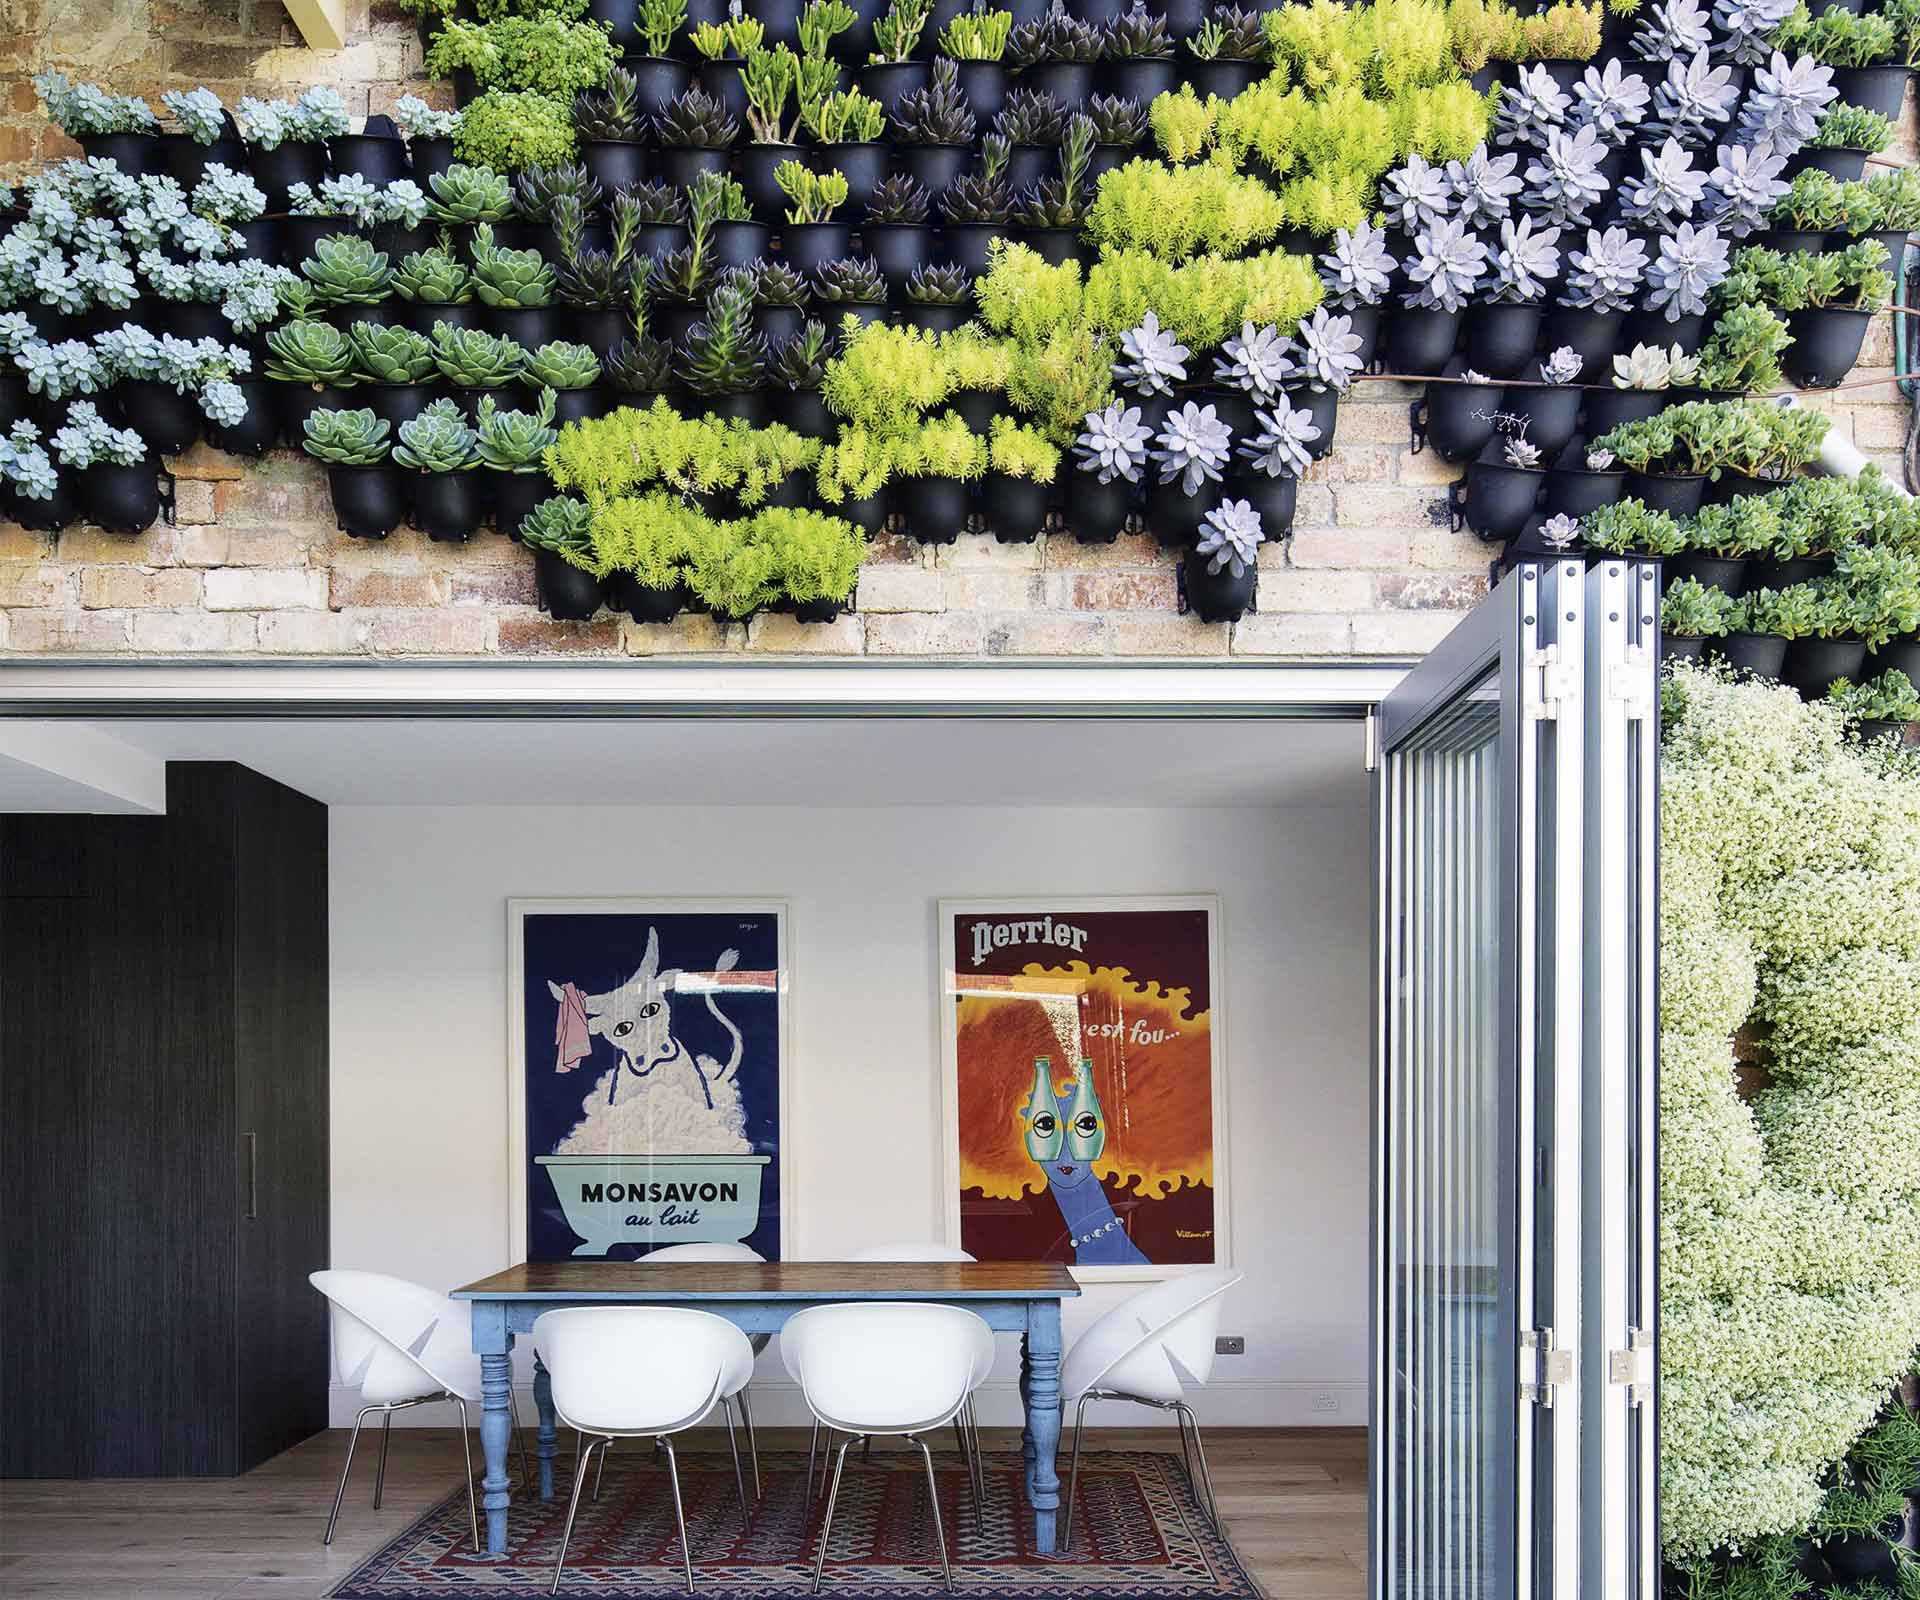 12 vertical garden ideas to inspire your own green wall | Inside Out